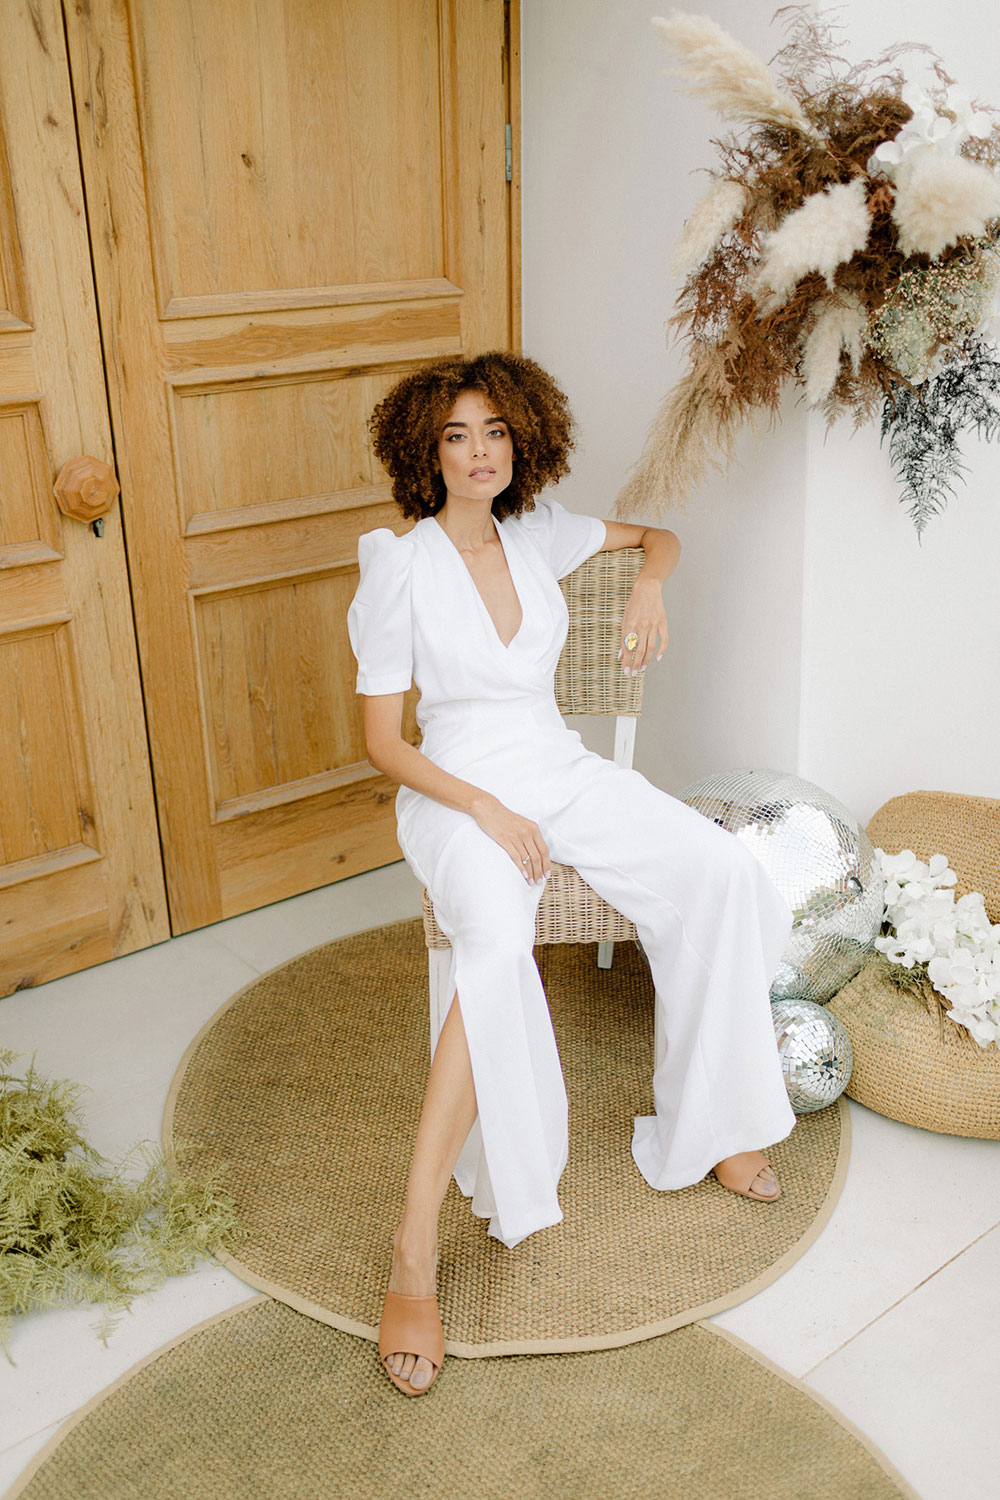 The third bridal look was done with a white plain jumpsuit with short sleeves and slit cropped pants